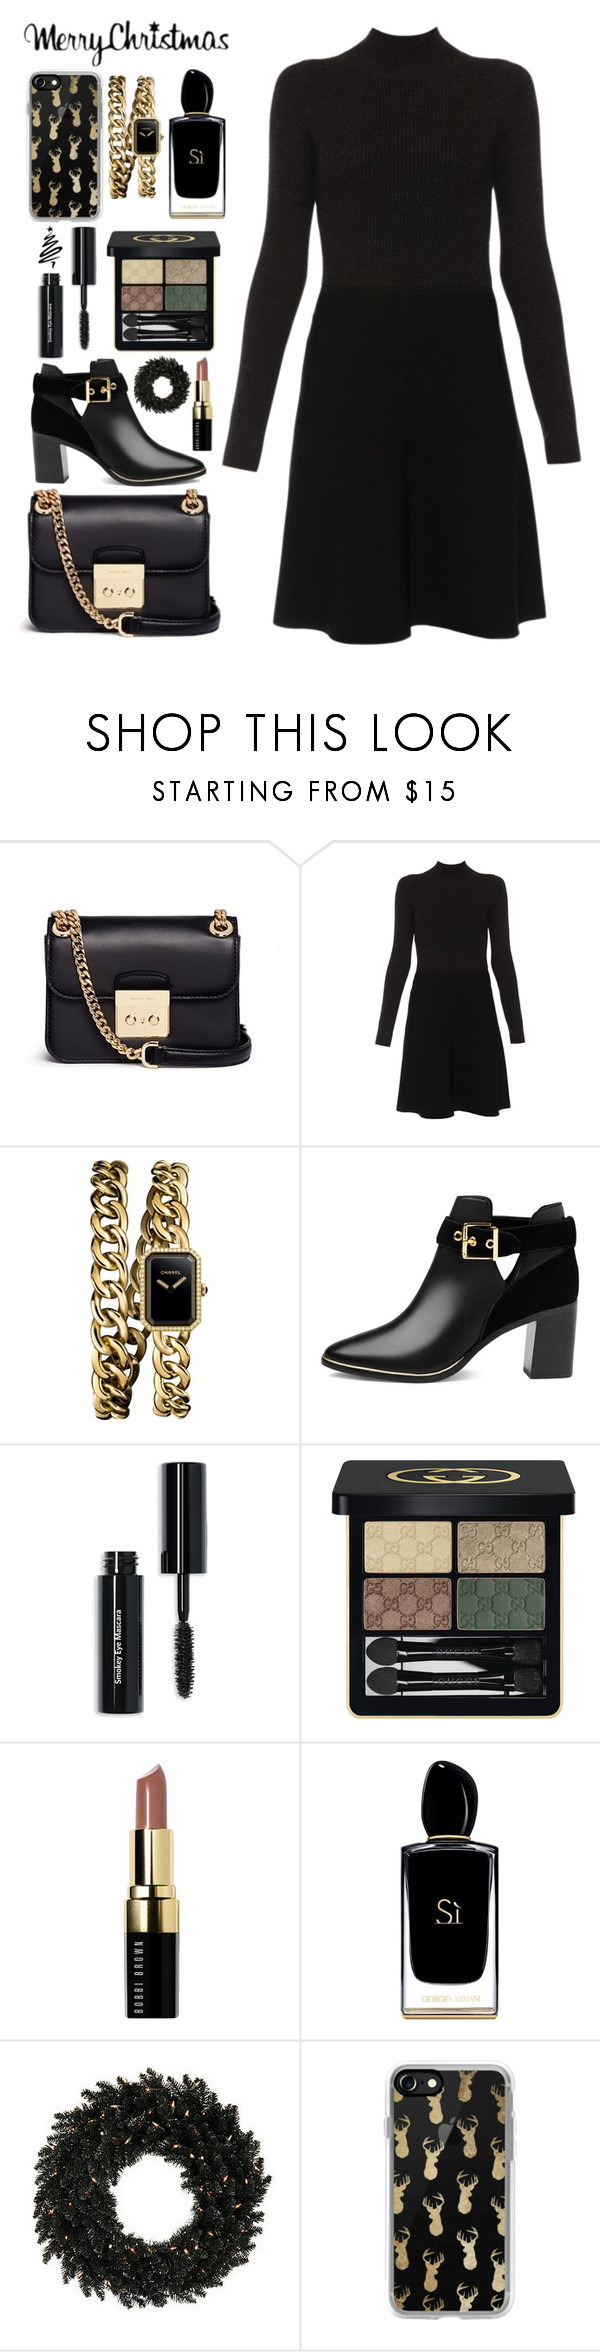 """""""Untitled #930"""" by alissar13 ❤ liked on Polyvore featuring Michael Kors, Paule Ka, Chanel, Ted Baker, Bobbi Brown Cosmetics, Gucci, Giorgio Armani and Casetify"""